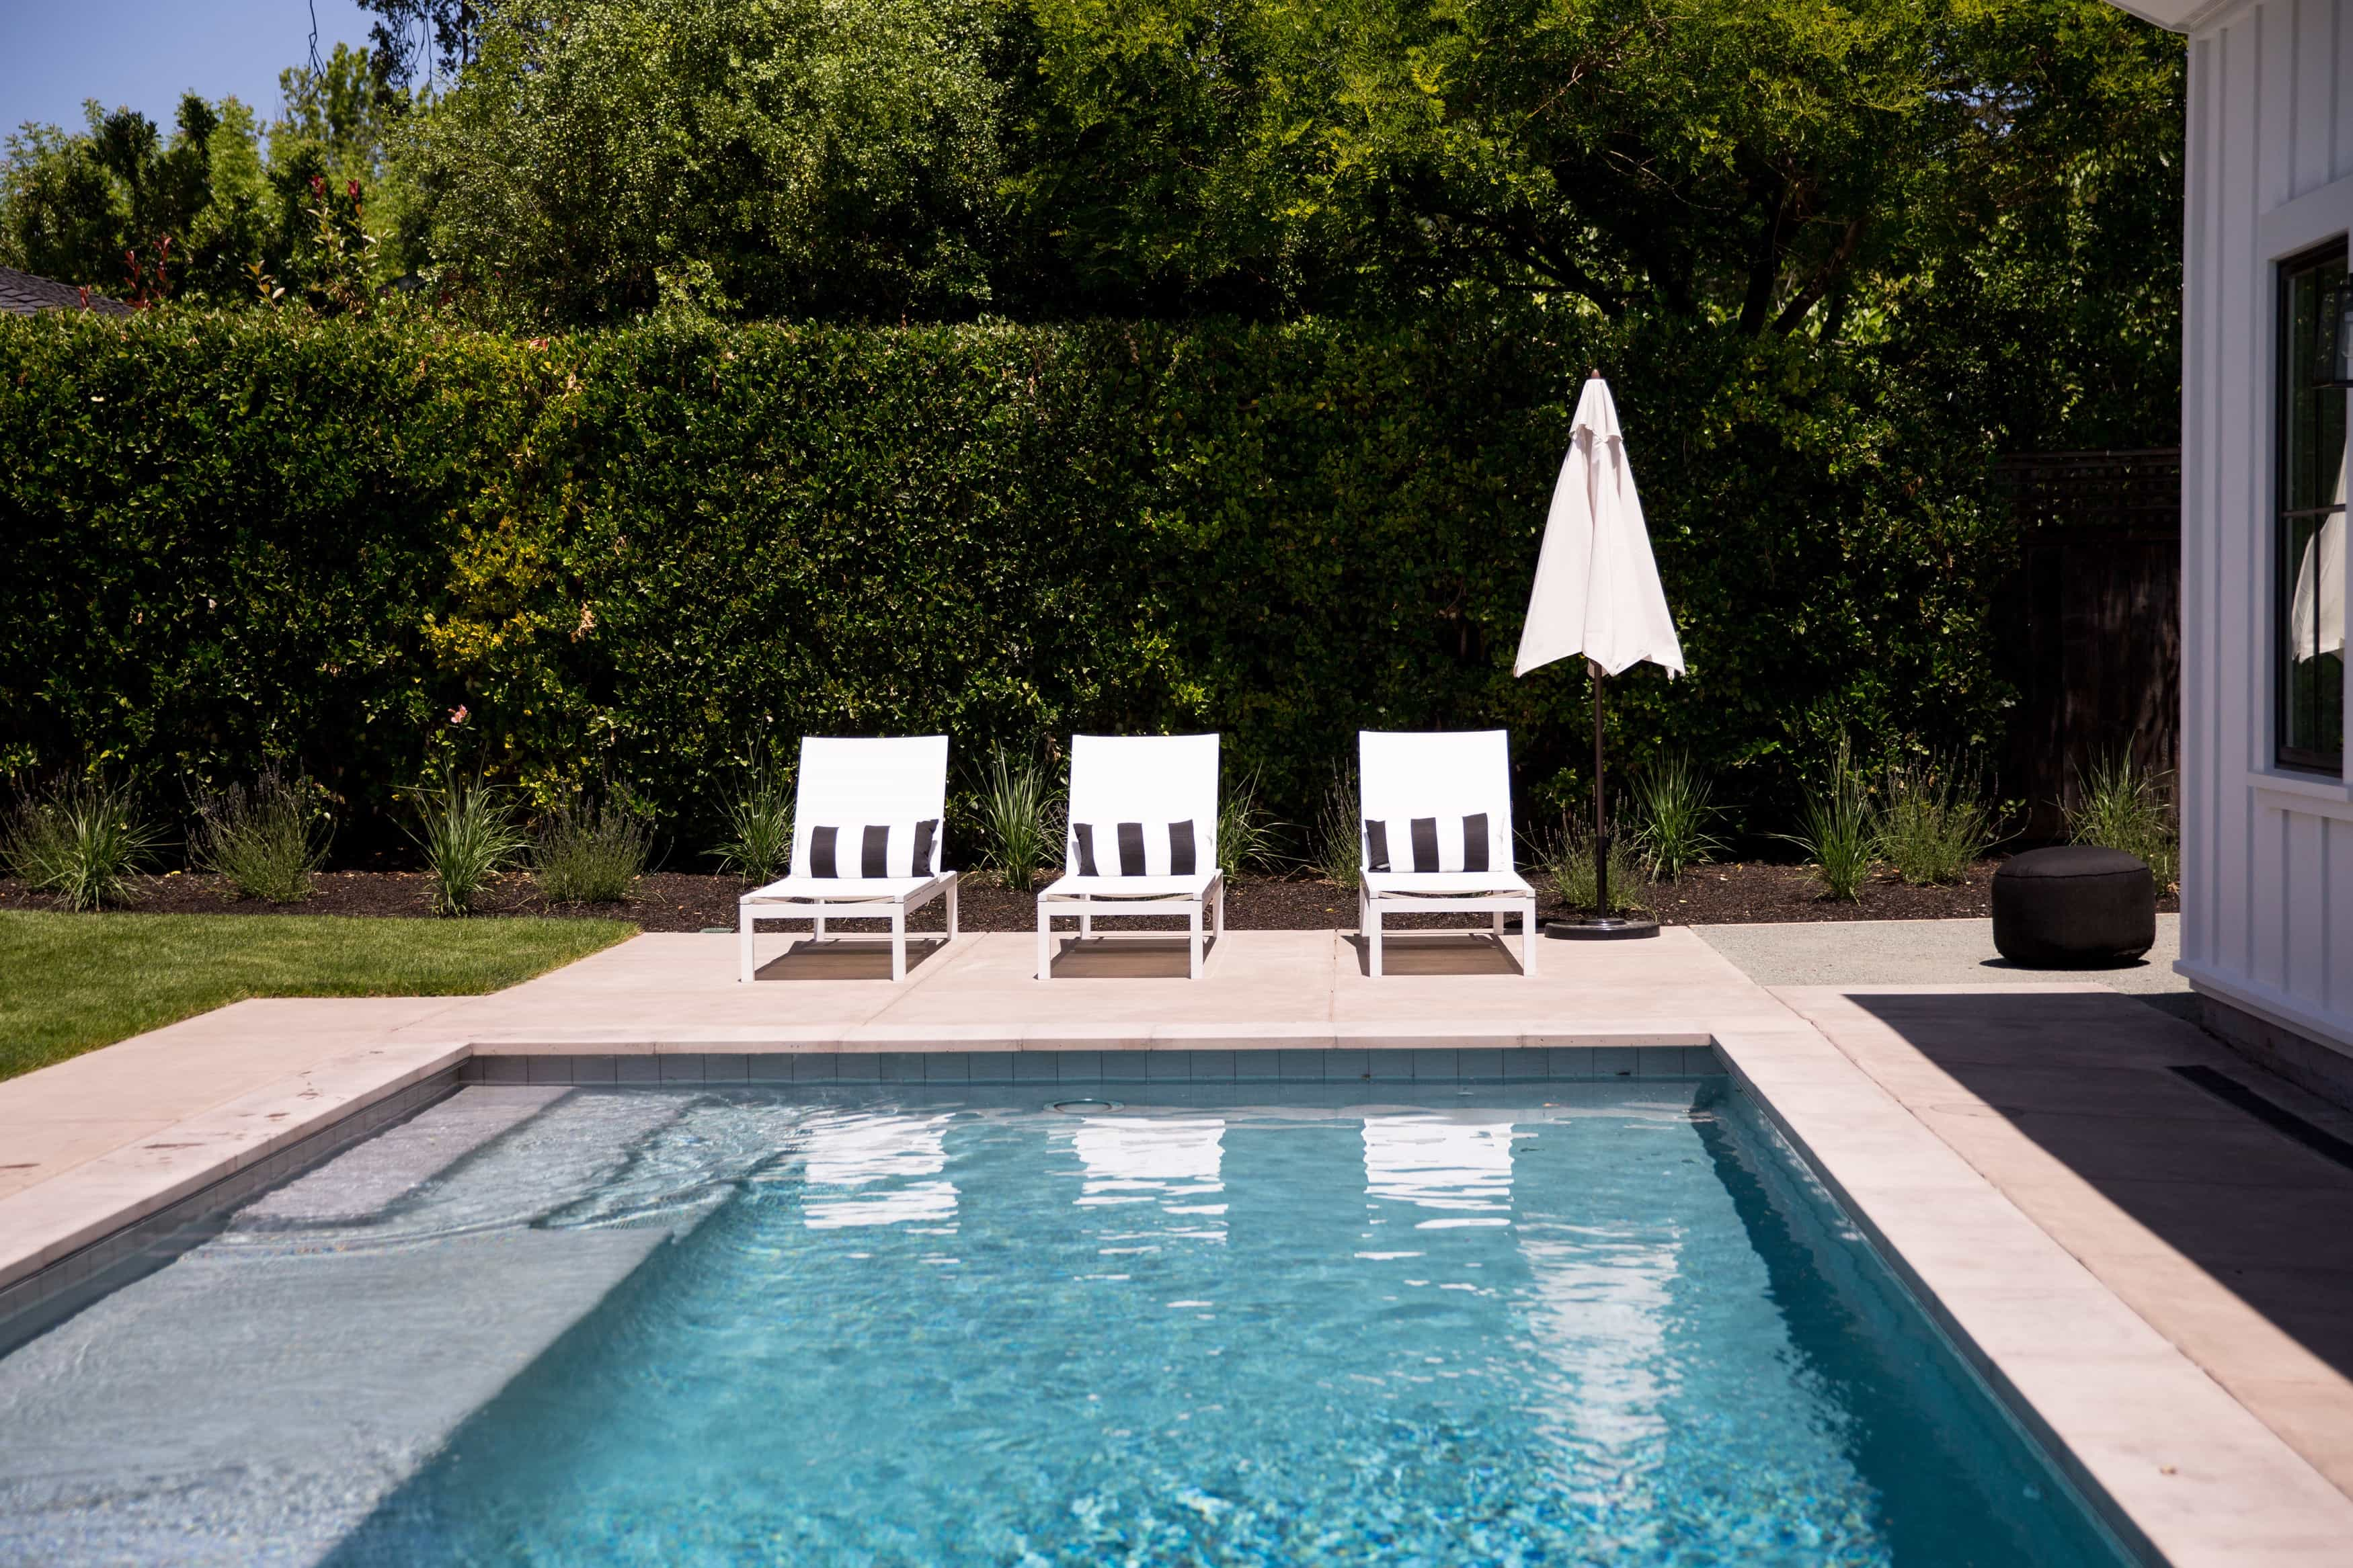 Contemporary Outdoor Pool With Plush Lounge Chairs (Image 5 of 25)